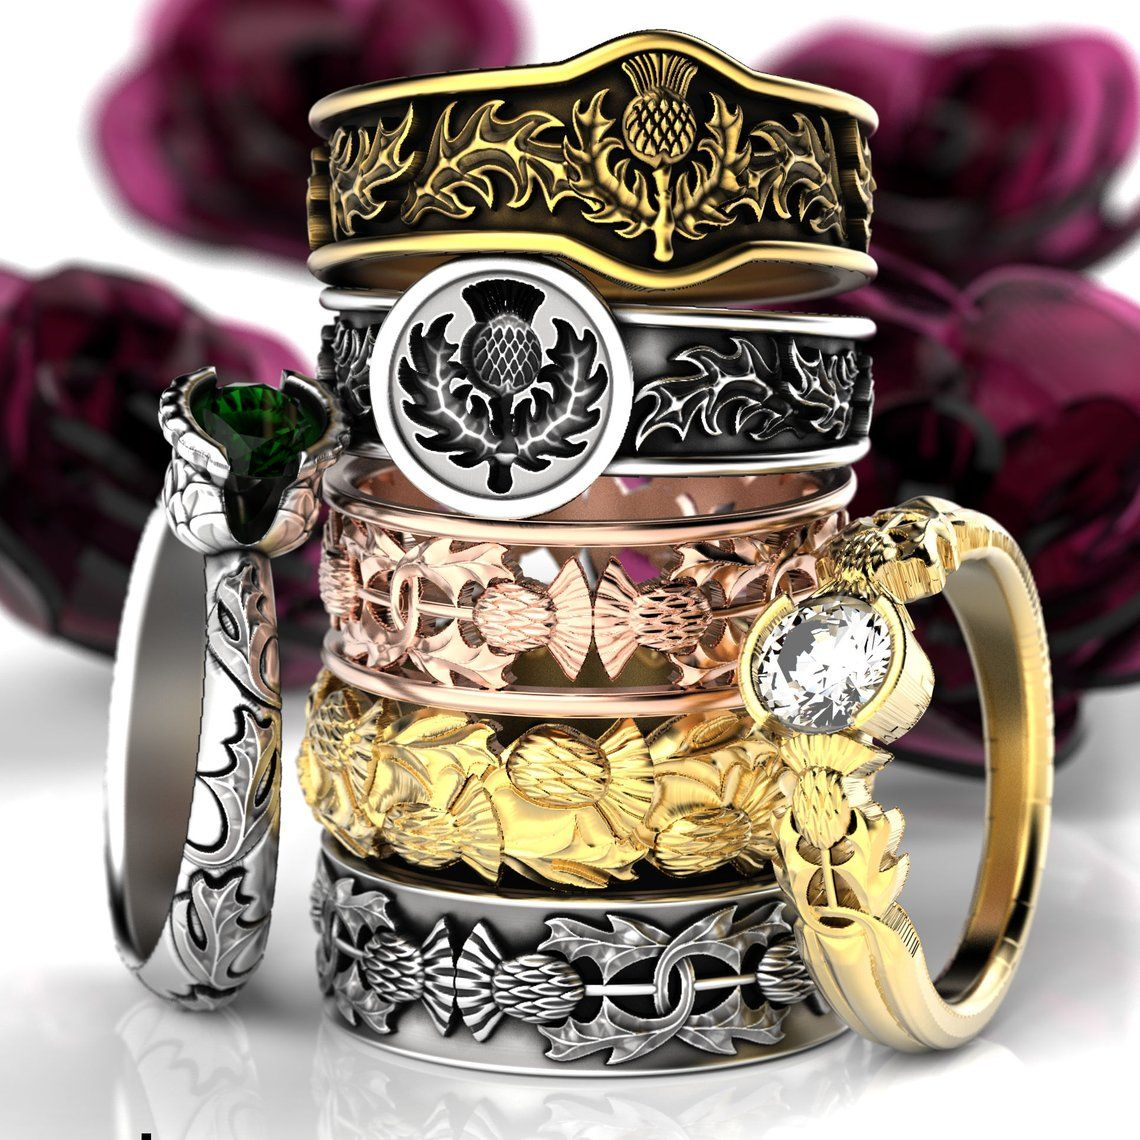 Scottish Thistle Jewelry, 925 Sterling Silver Thistle Ring